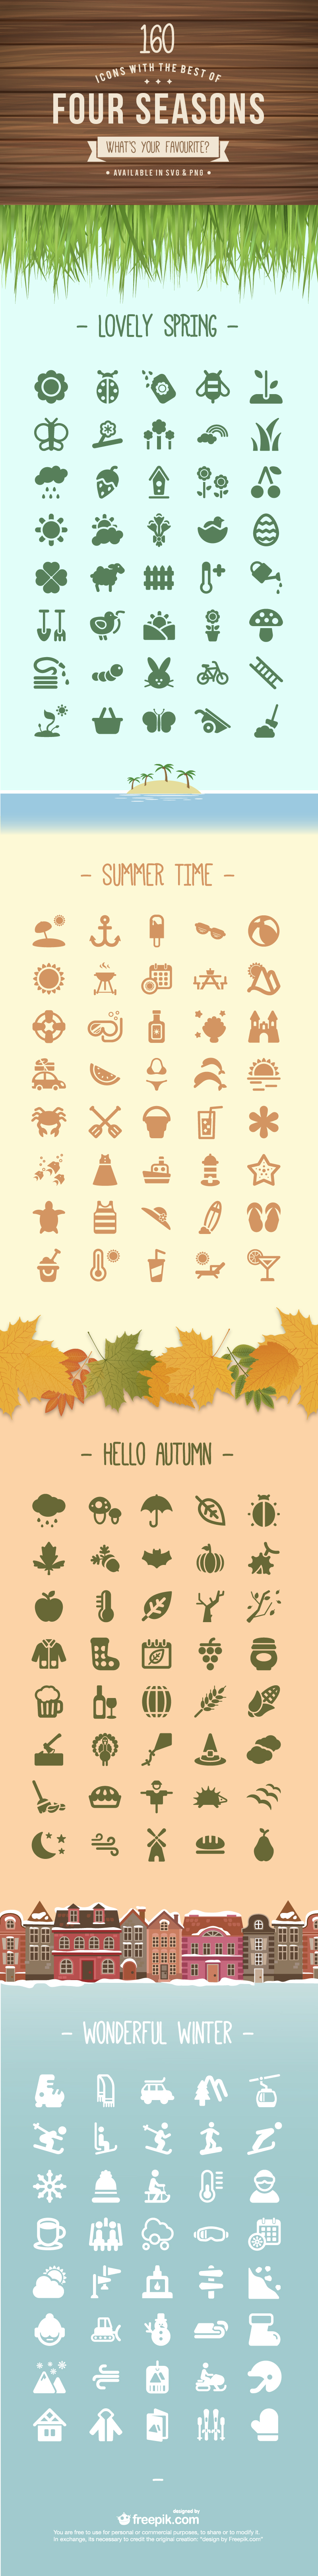 4Seasons 01 160 free icons with the best of each season